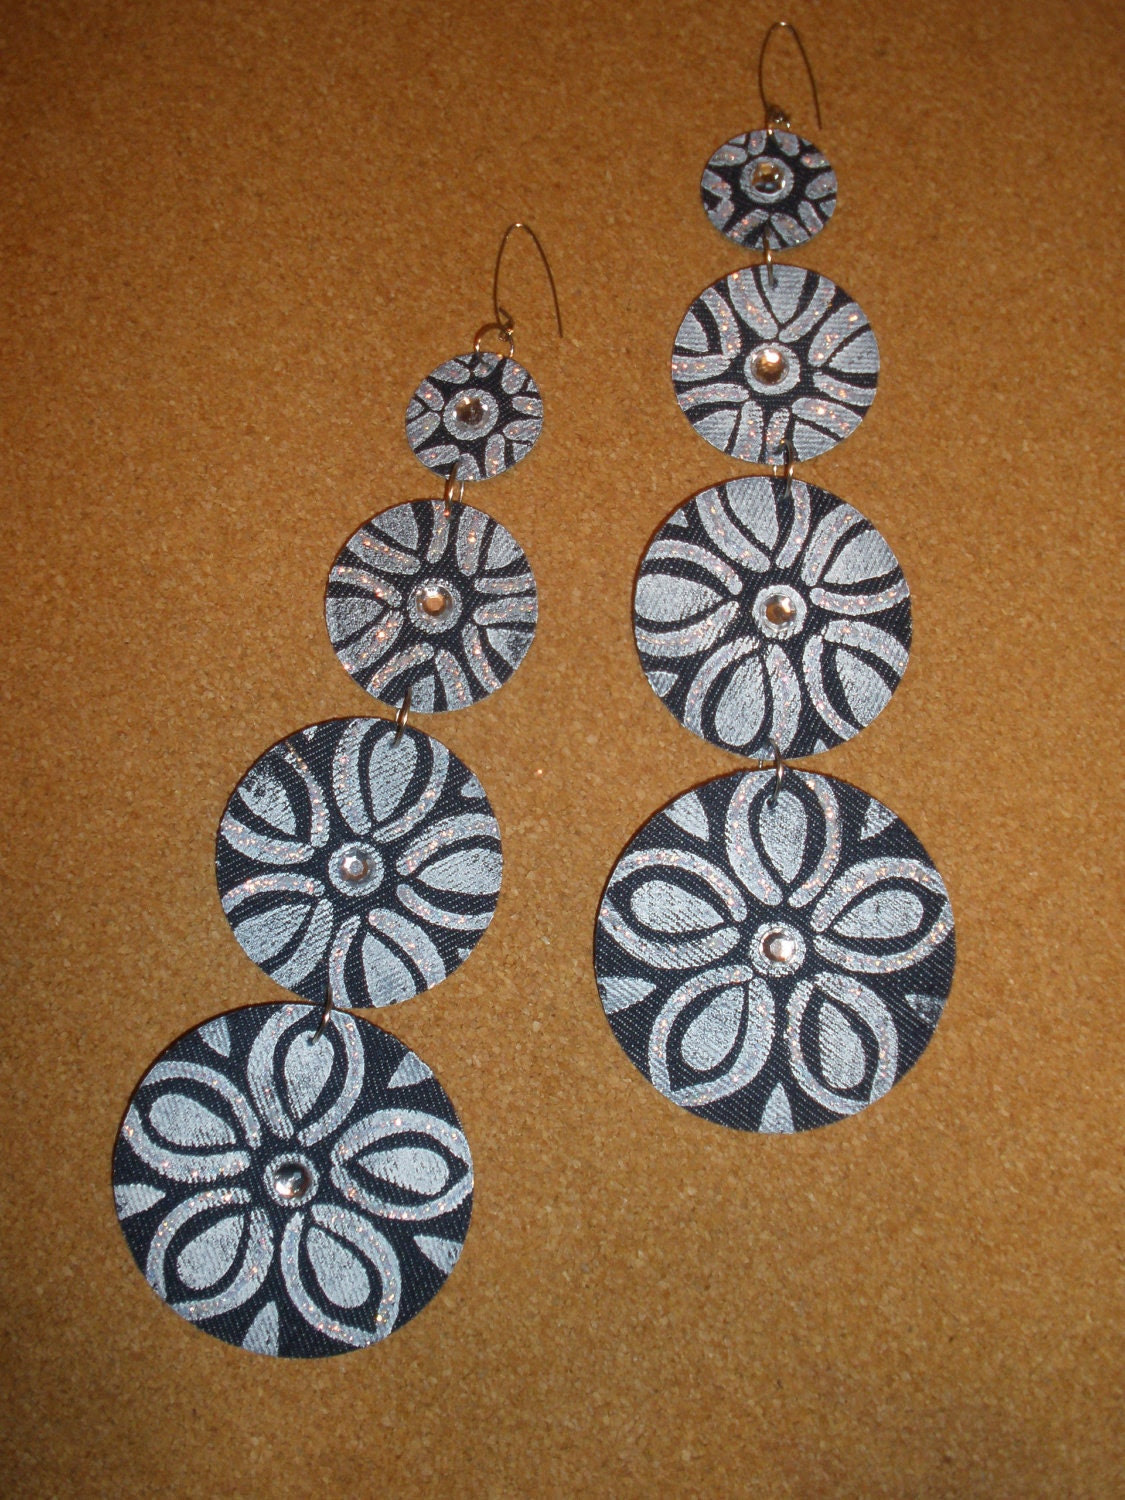 Fabulous Long Dangling Denim Fabric Earrings, Embellish with Flowers and Rhinestones, Trimmed in Glitter, Ladies and Women Fashion Earrings